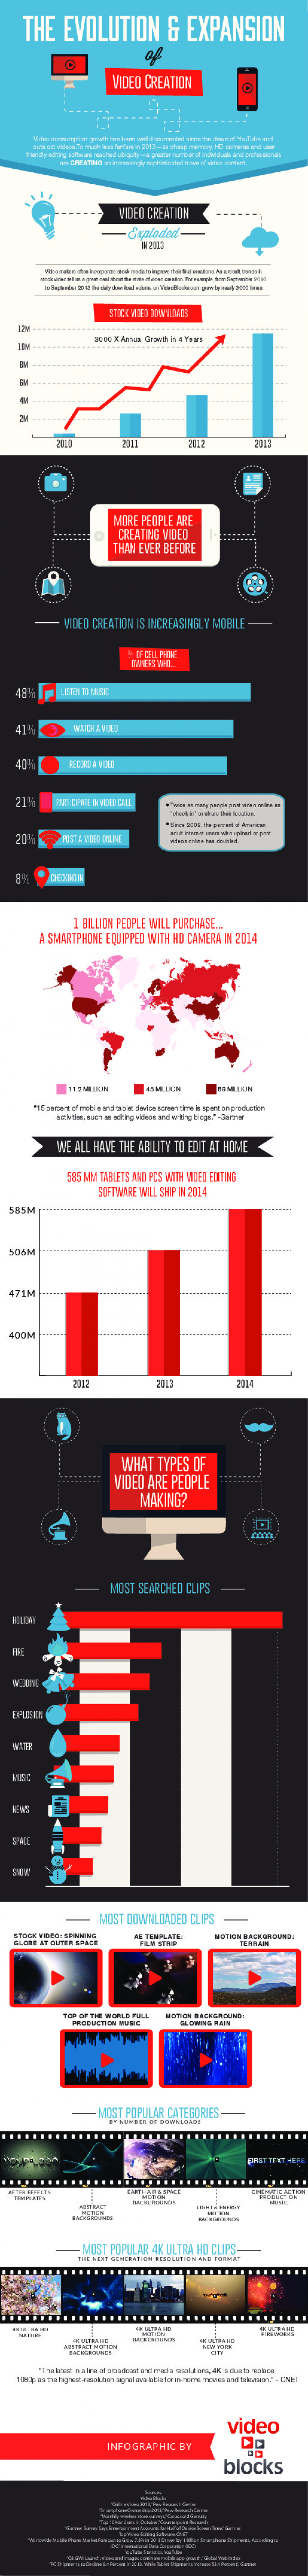 The Evolution and Expansion of Video Creation  Infographic